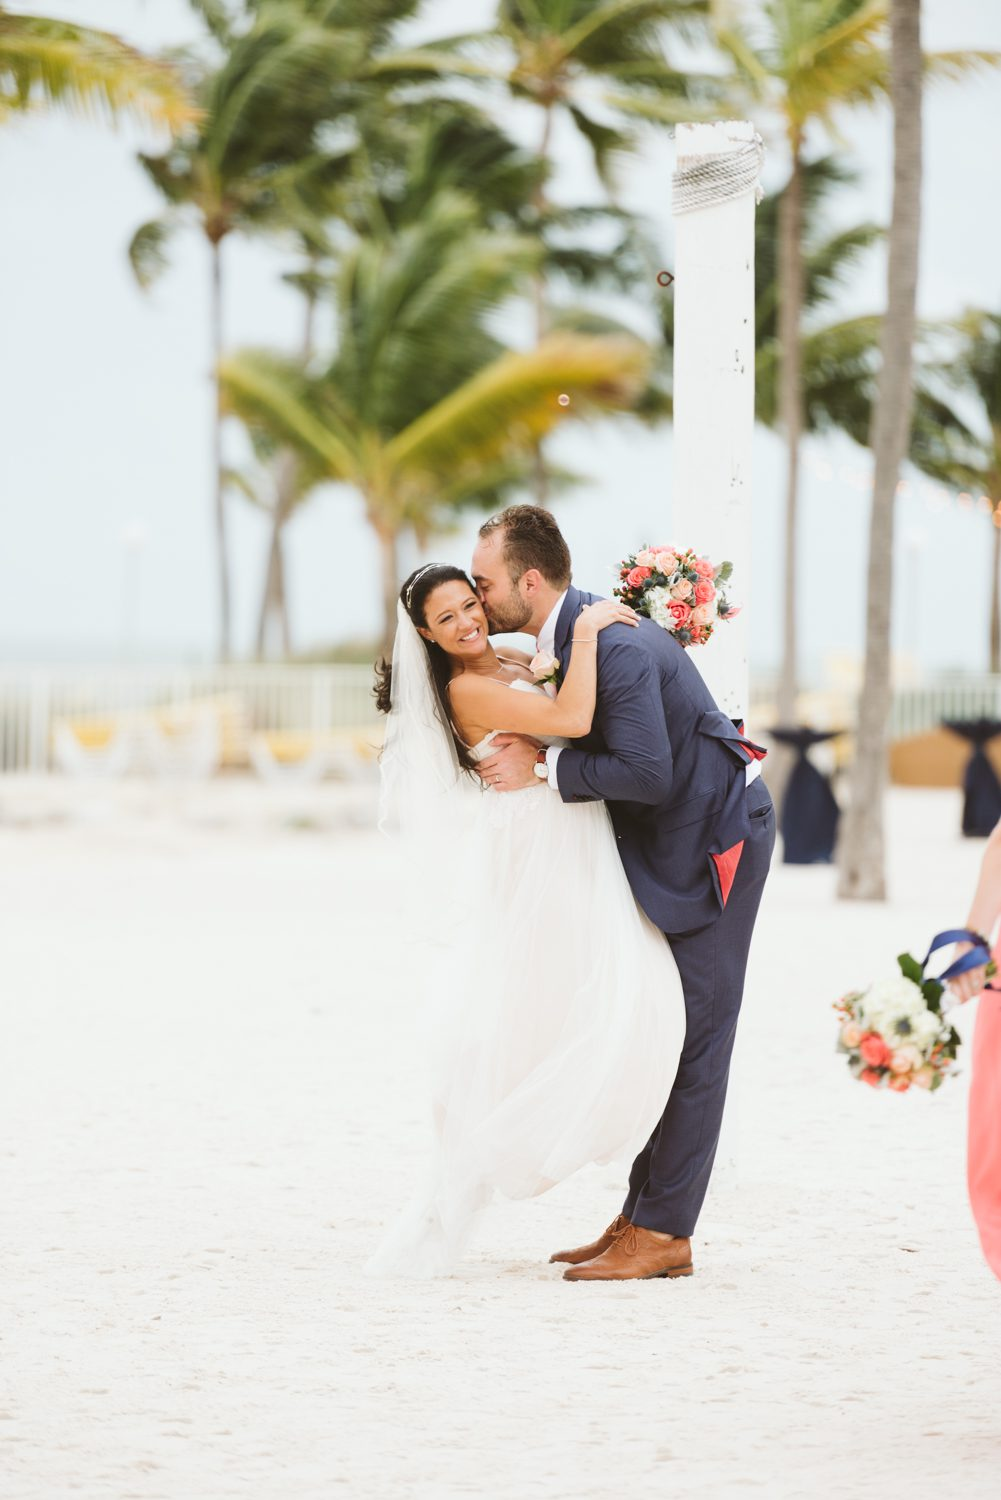 Postcard Inn at Holiday Isle Wedding Islamorada Wedding Photographer 295 - A Wedding Photographer in Key West - 2016 in Review